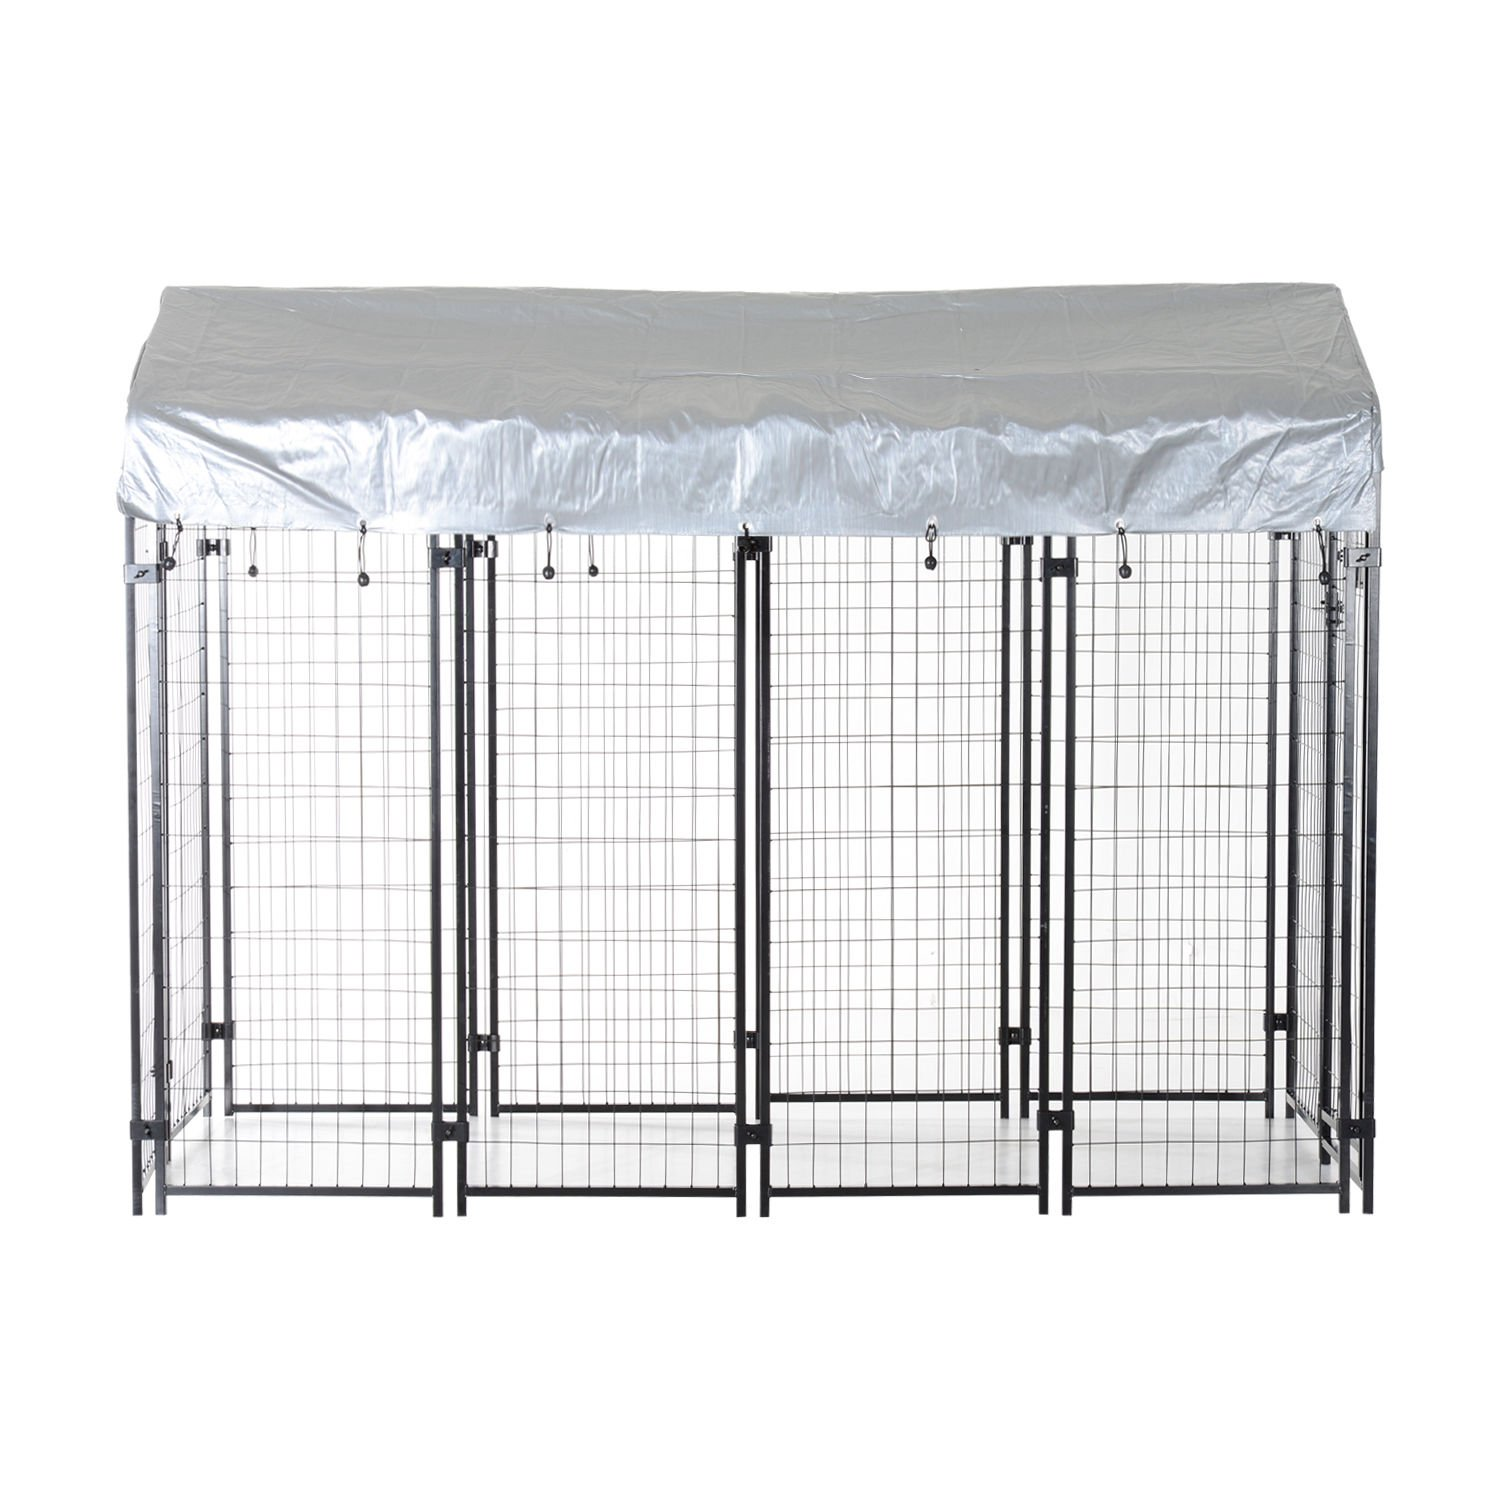 PawHut 97'' x 46'' Outdoor Galvanized Metal Dog Kennel Playpen with UV and Water Resistant Tarp Cover by PawHut (Image #4)